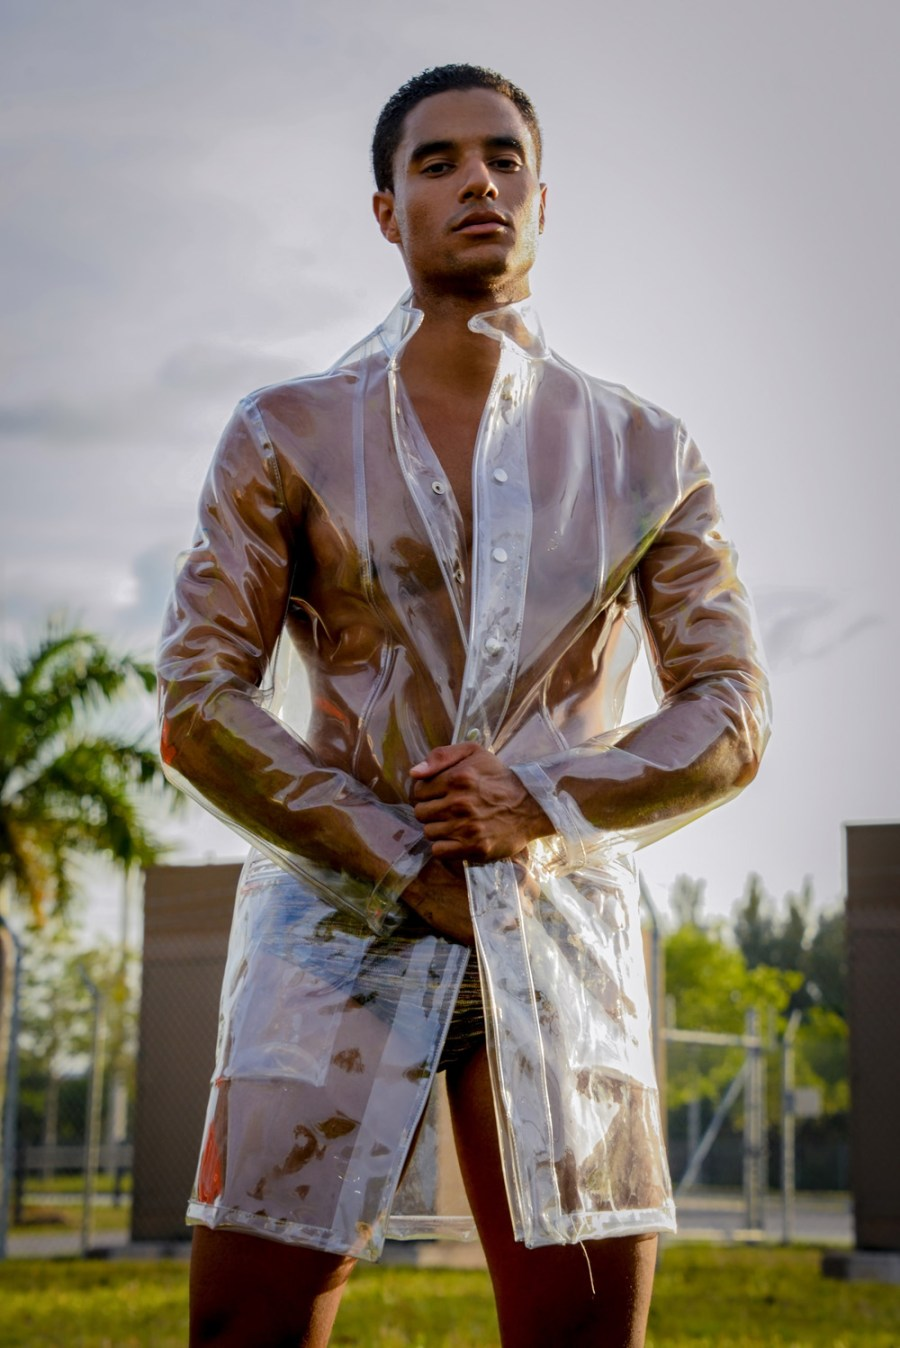 Excited to present this stunning material by photographer Ivan Sanchez exclusive for Fashionably Male, featuring male model Derick Johnson represented by Elite Models Miami all clothing is provided by Etnos with some galant garments looking so good to Derick modeling in aesthetics movements.